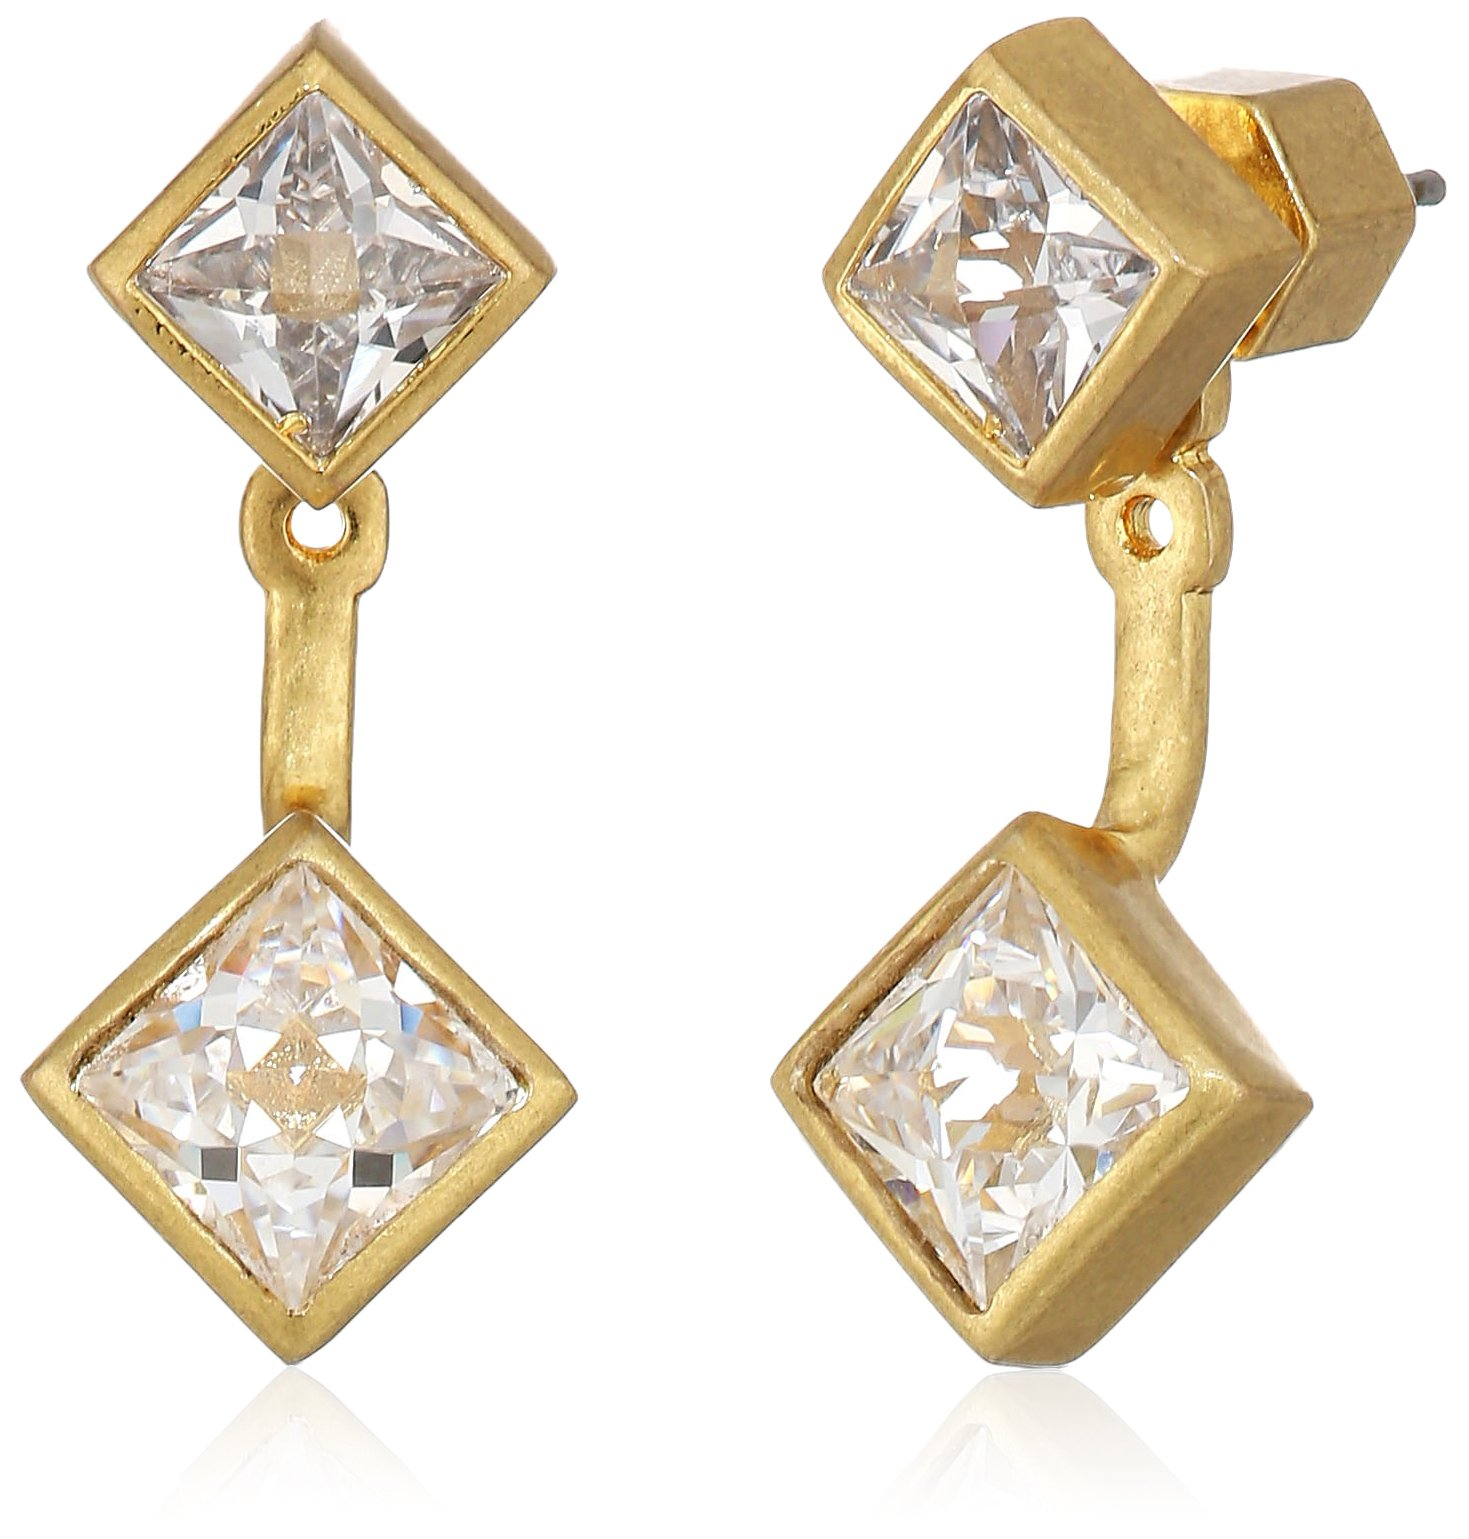 Nicole Miller Pyramid Gold Earrings Jacket